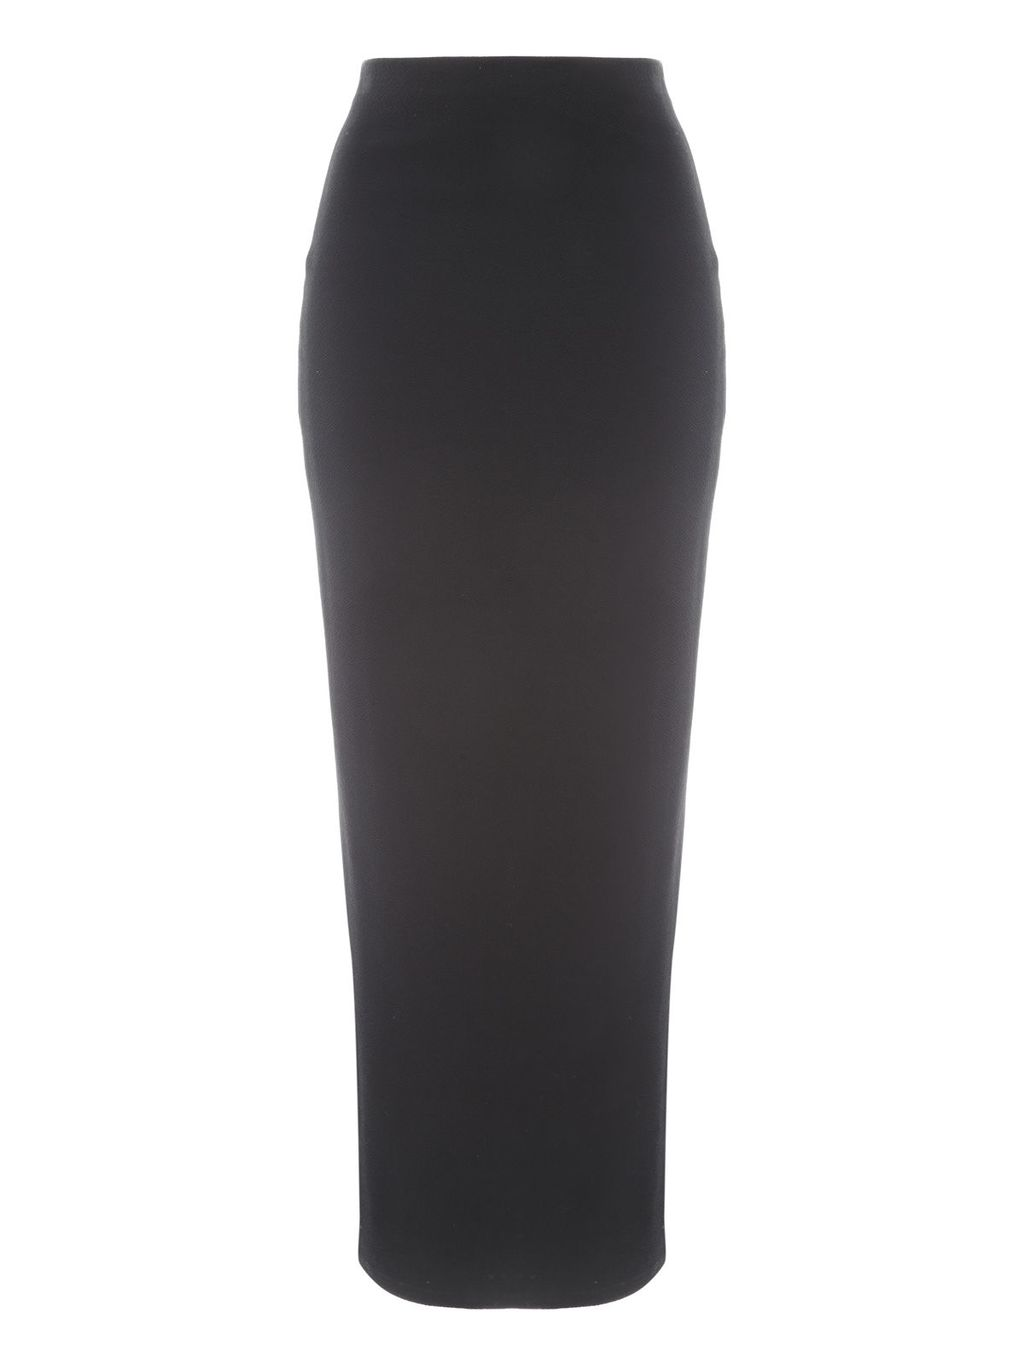 Tube Maxi Skirt, Black - length: mid thigh; pattern: plain; fit: tight; waist detail: elasticated waist; waist: high rise; predominant colour: black; occasions: casual; fibres: polyester/polyamide - stretch; style: tube; texture group: jersey - clingy; pattern type: fabric; season: s/s 2016; wardrobe: basic